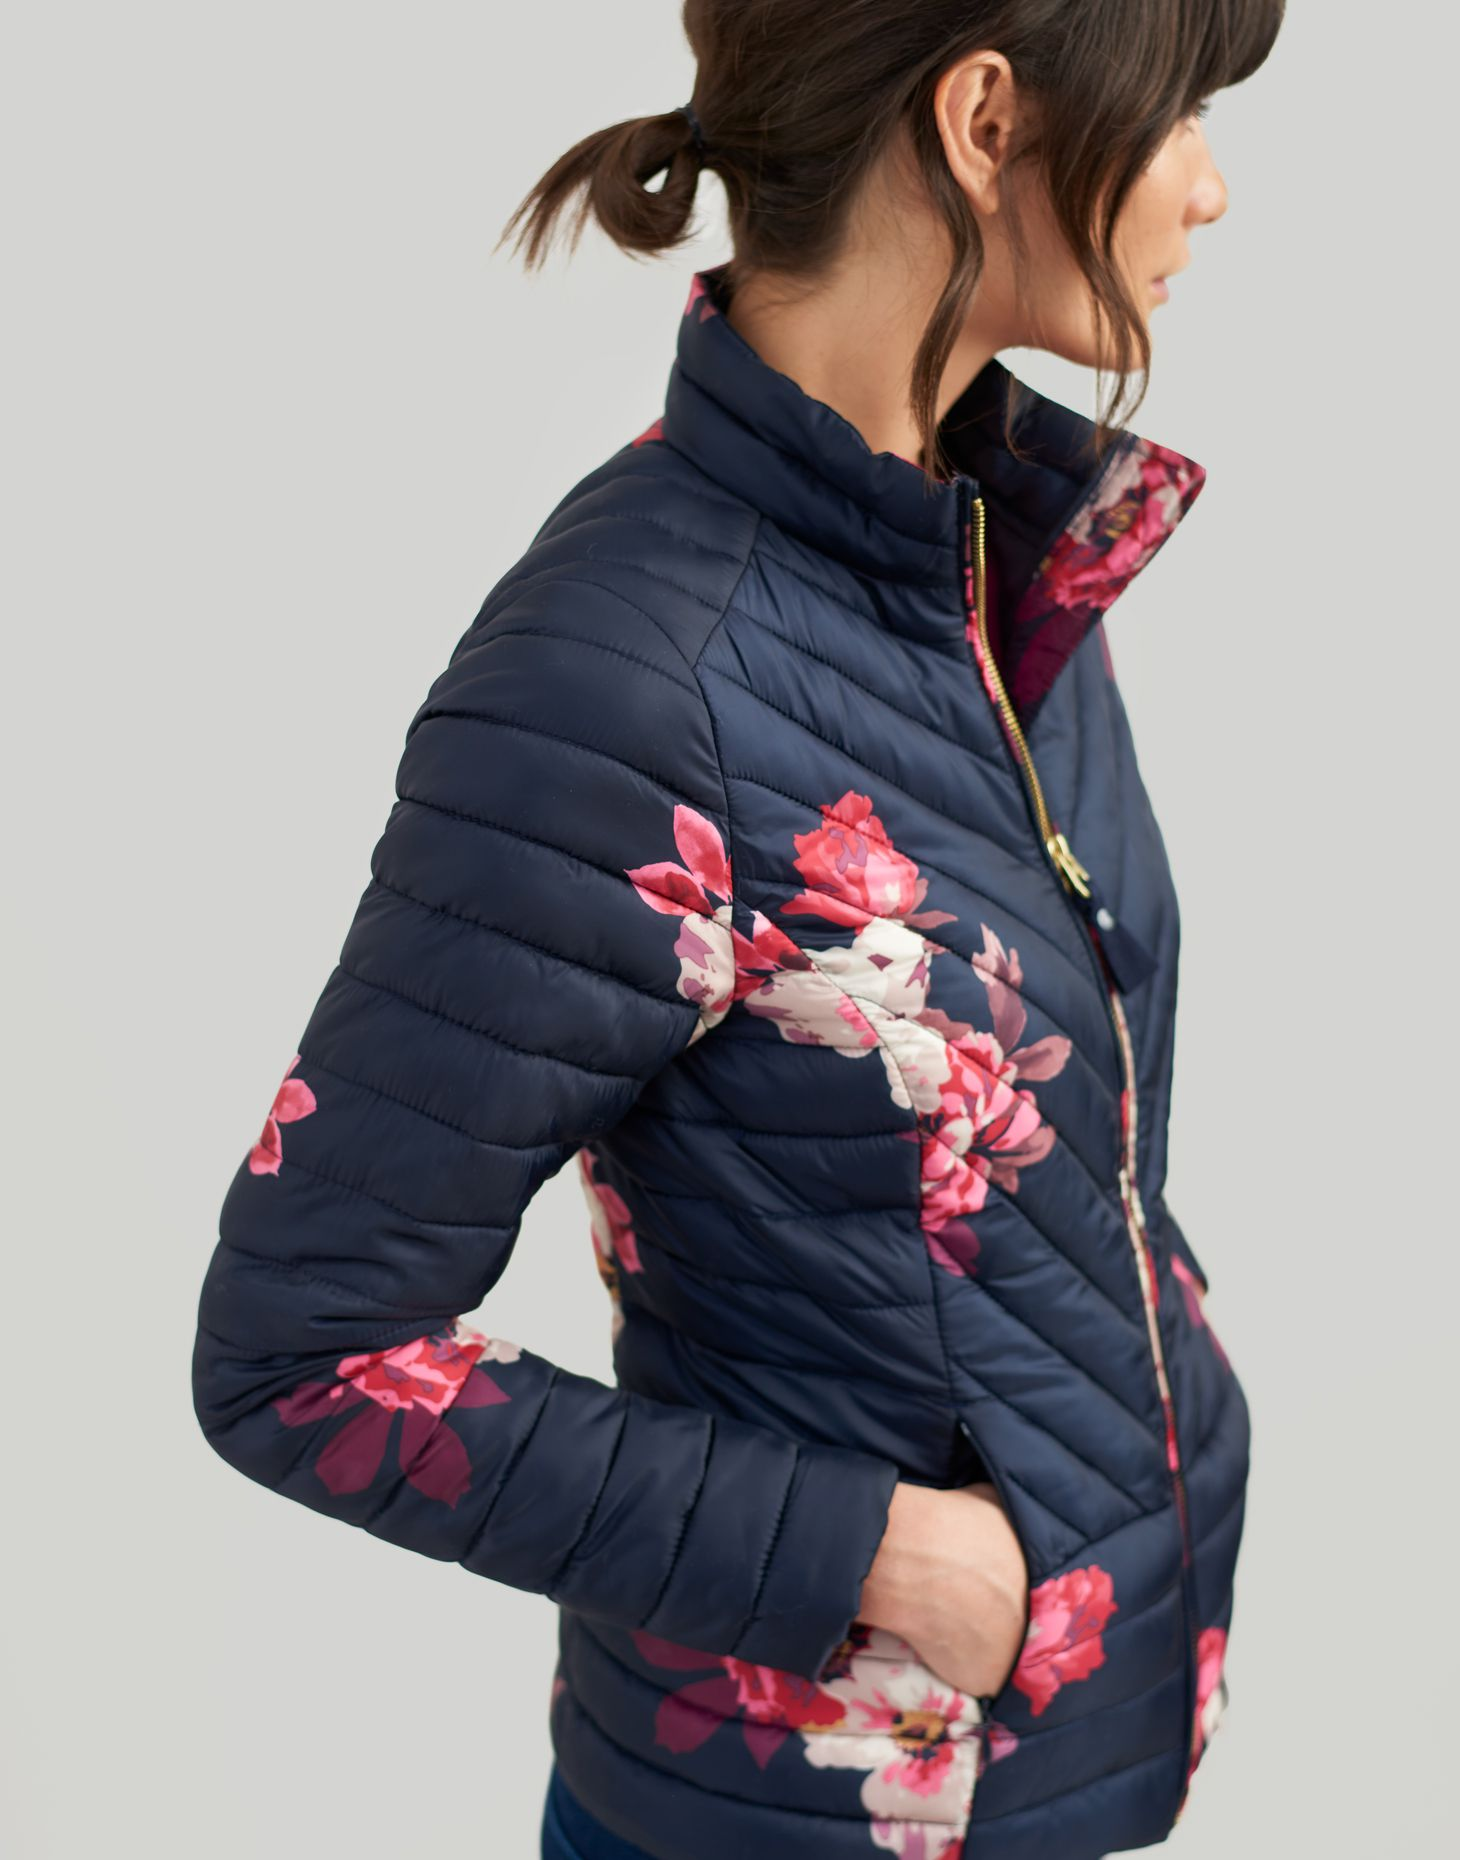 Joules-Womens-Elodie-Print-Quilted-Jacket-in-Marine-Navy-Bircham-Bloom